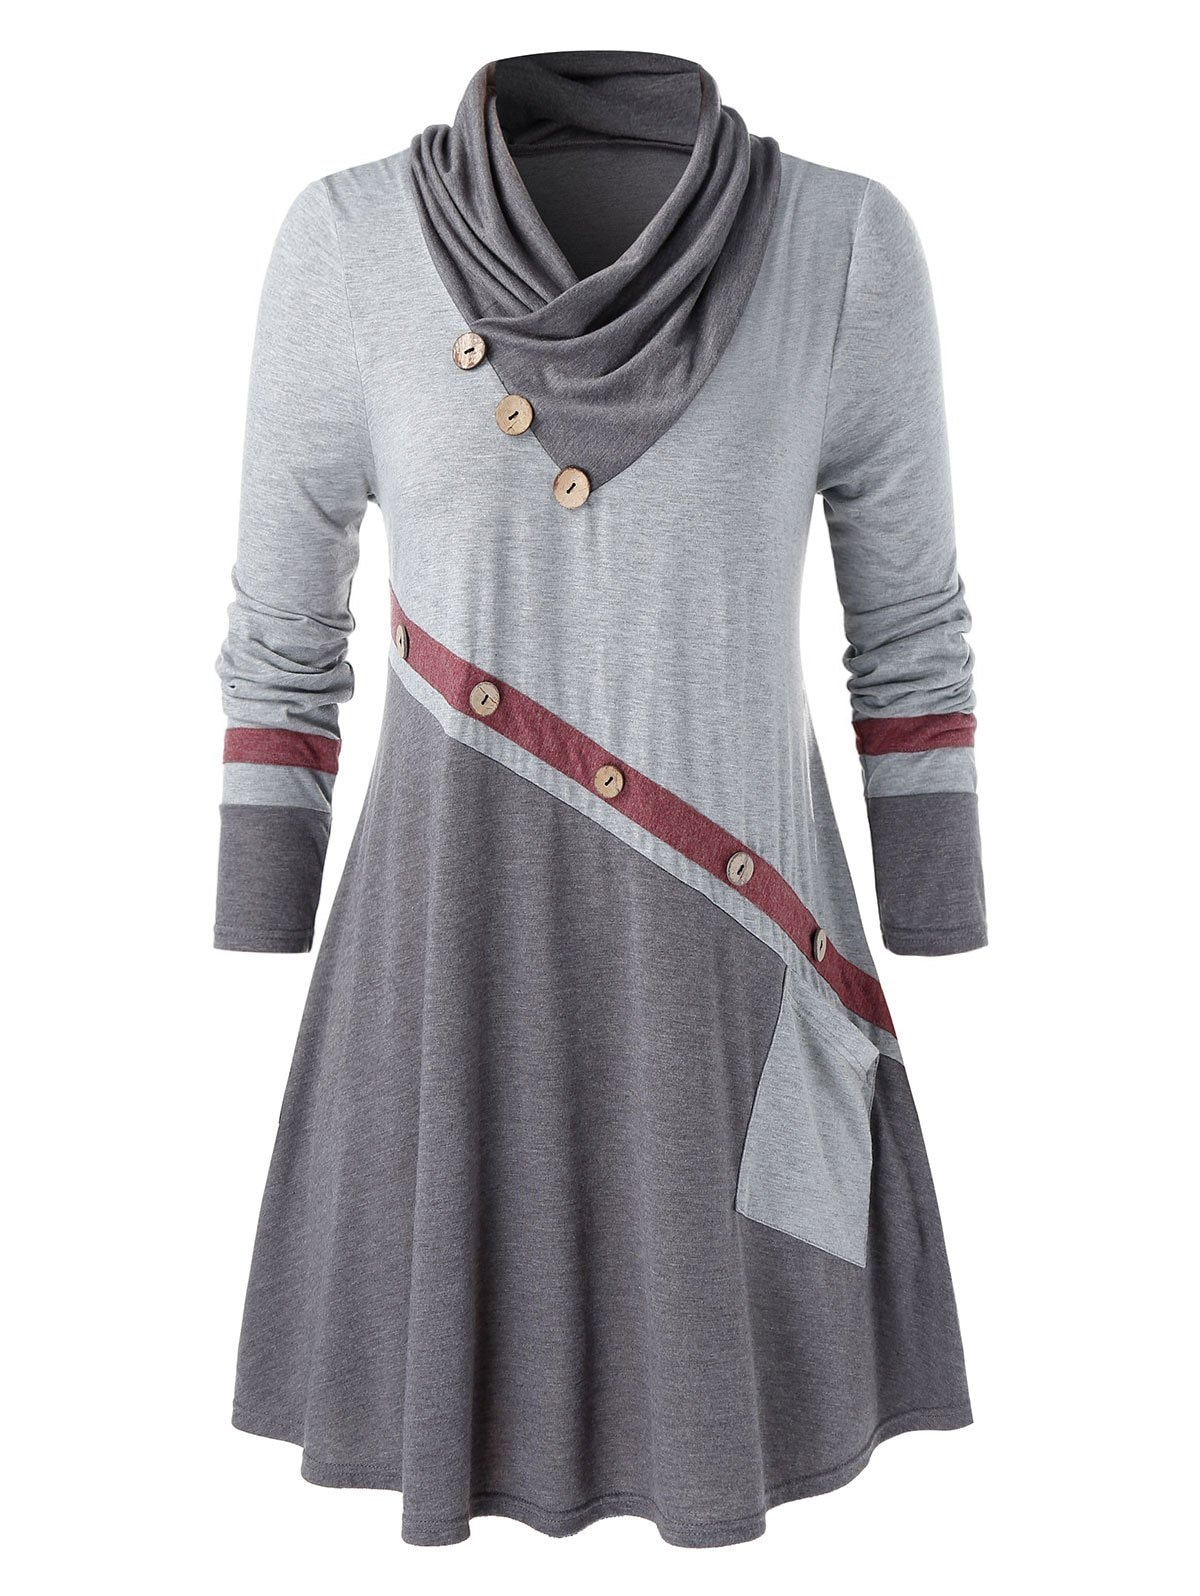 Plus Size Shawl Collar Buttons Contrast Color T Shirt